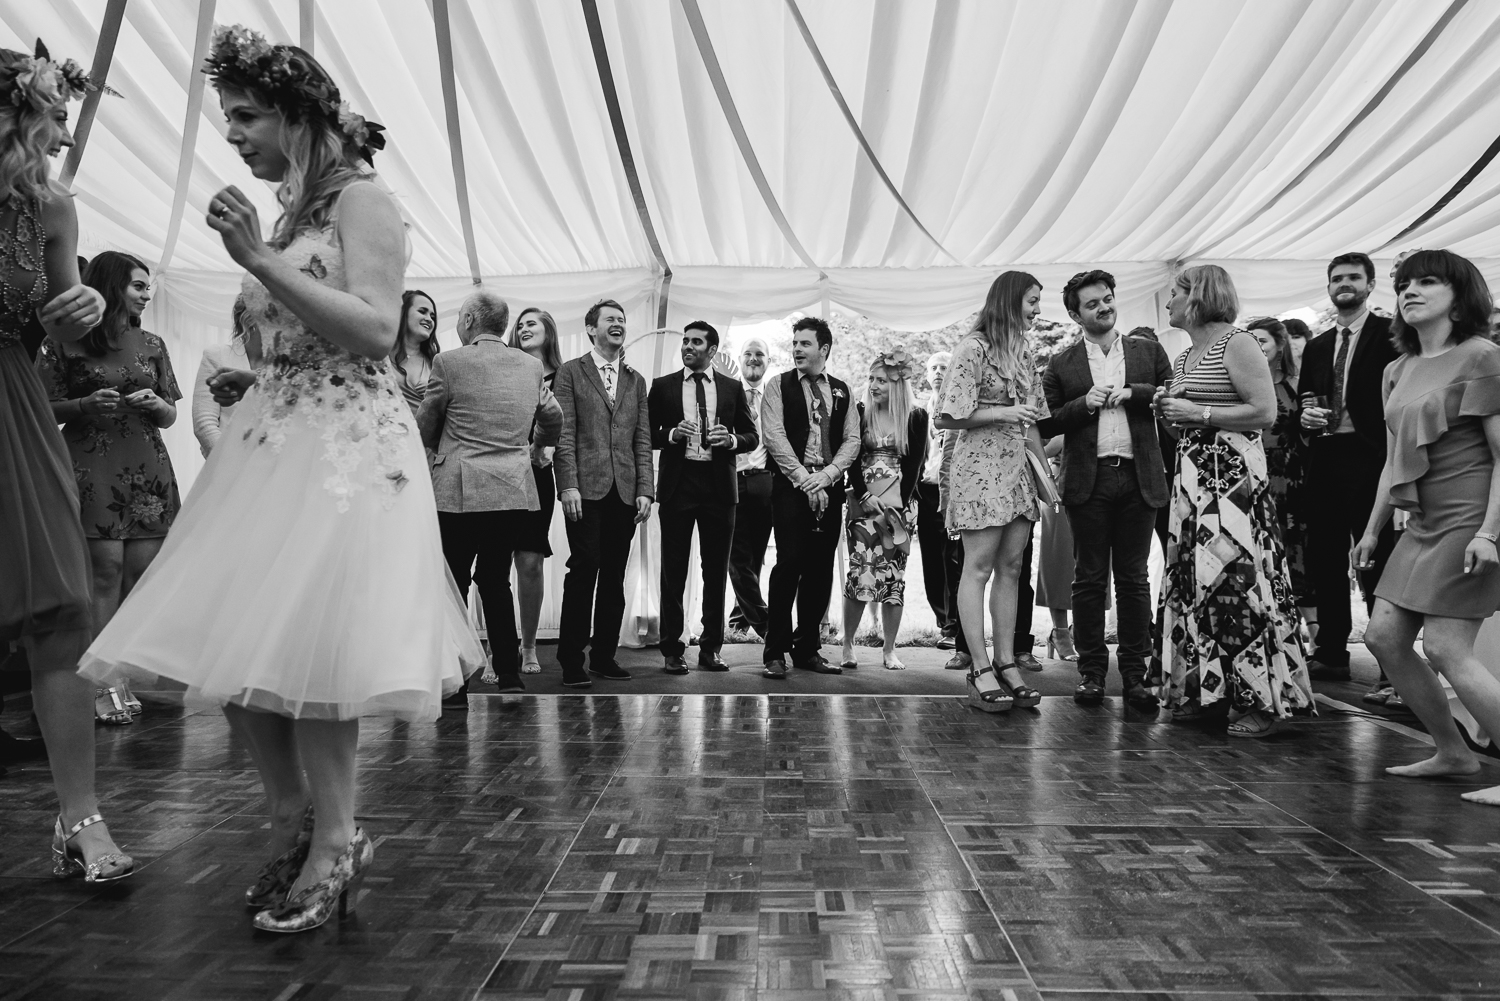 Cambridge-Wedding-Photographer-Alternative-Natural-Unposed-Marquee.jpg